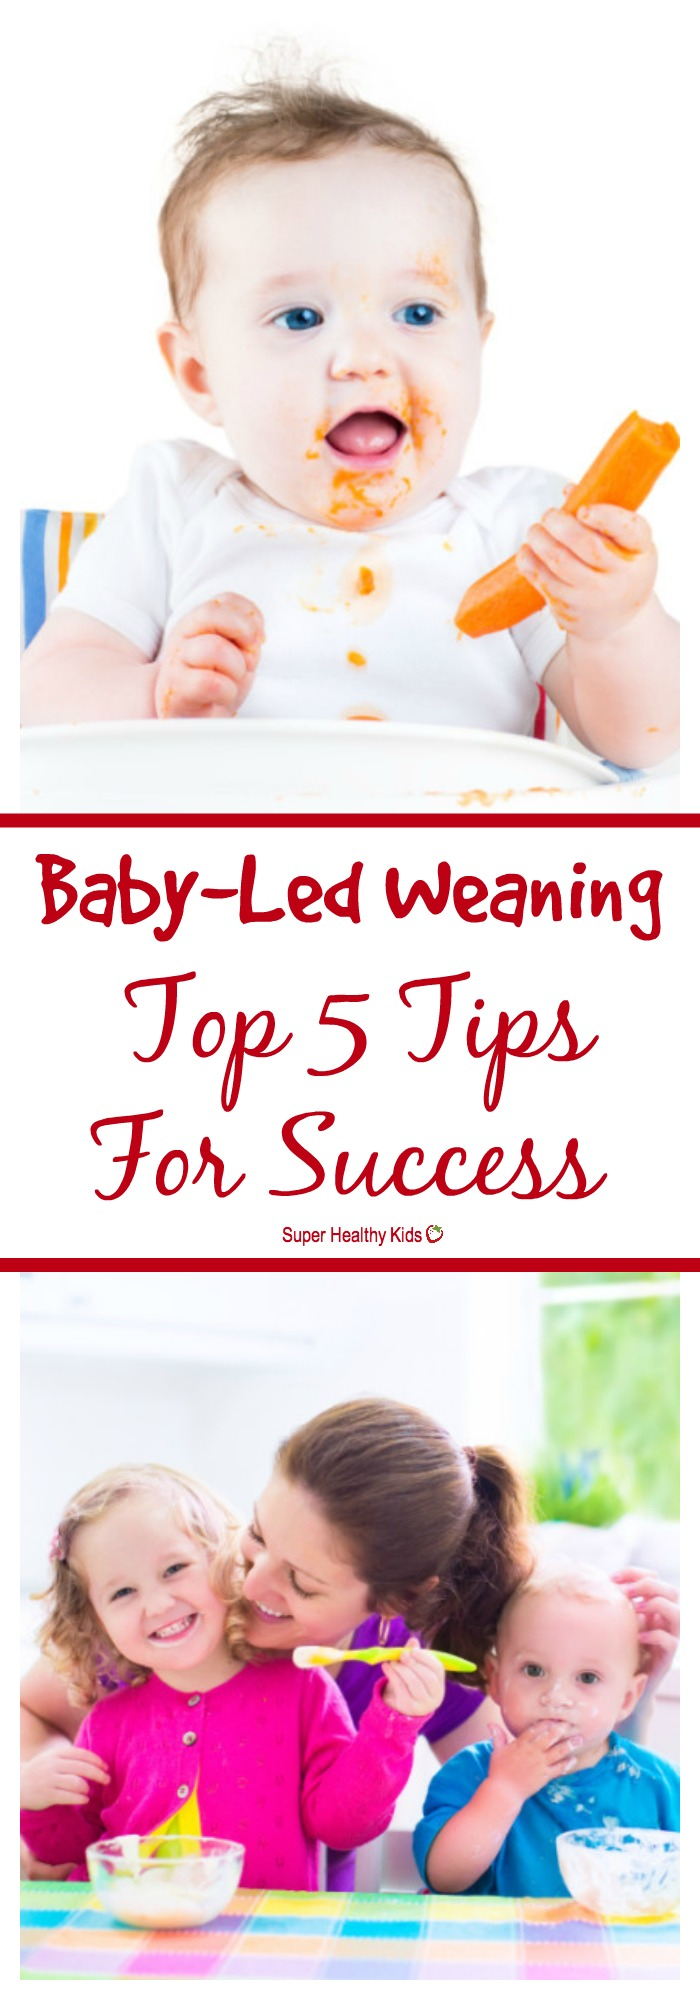 BABY - Baby-Led Weaning: Top 5 Tips For Success. The top tips for successful baby-led weaning, from a dietitian and mom. http://www.superhealthykids.com/baby-led-weaning-top-5-tips-success/